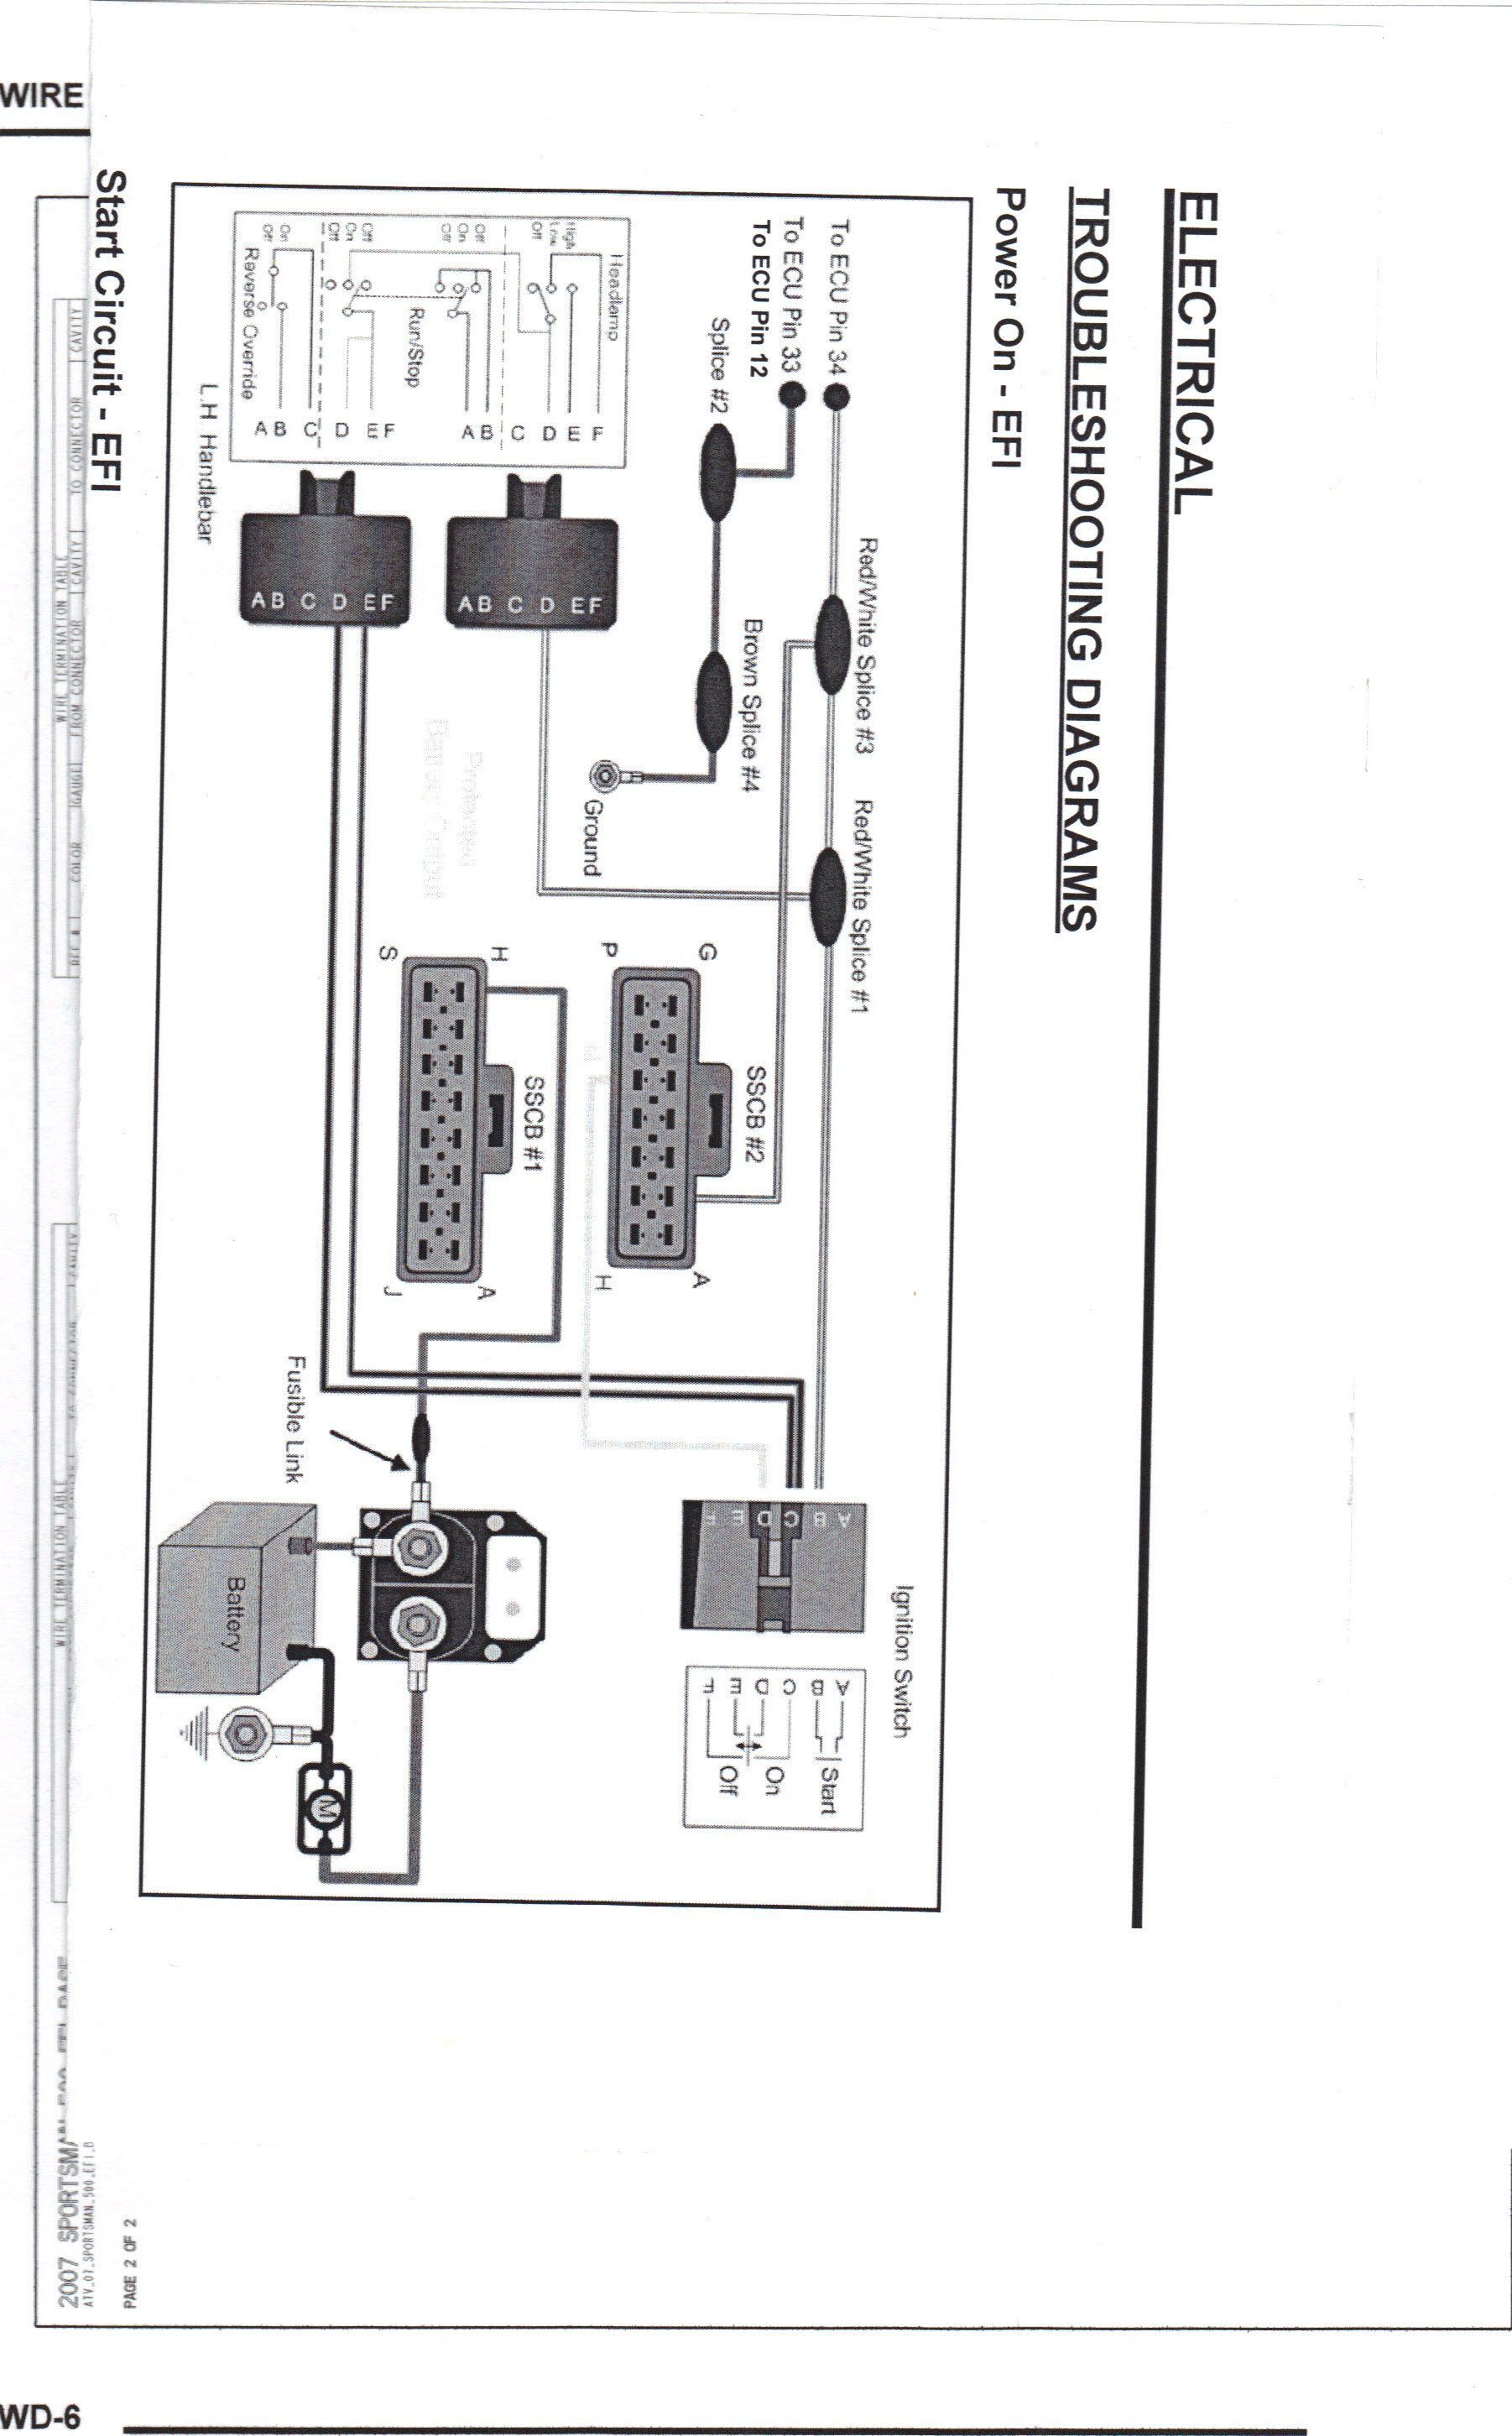 2010 07 02_133314_500efi_ignition_circuit my 2007 sportsman 500 doesn't start no click or dash lights 2000 polaris scrambler 500 wiring diagram at creativeand.co